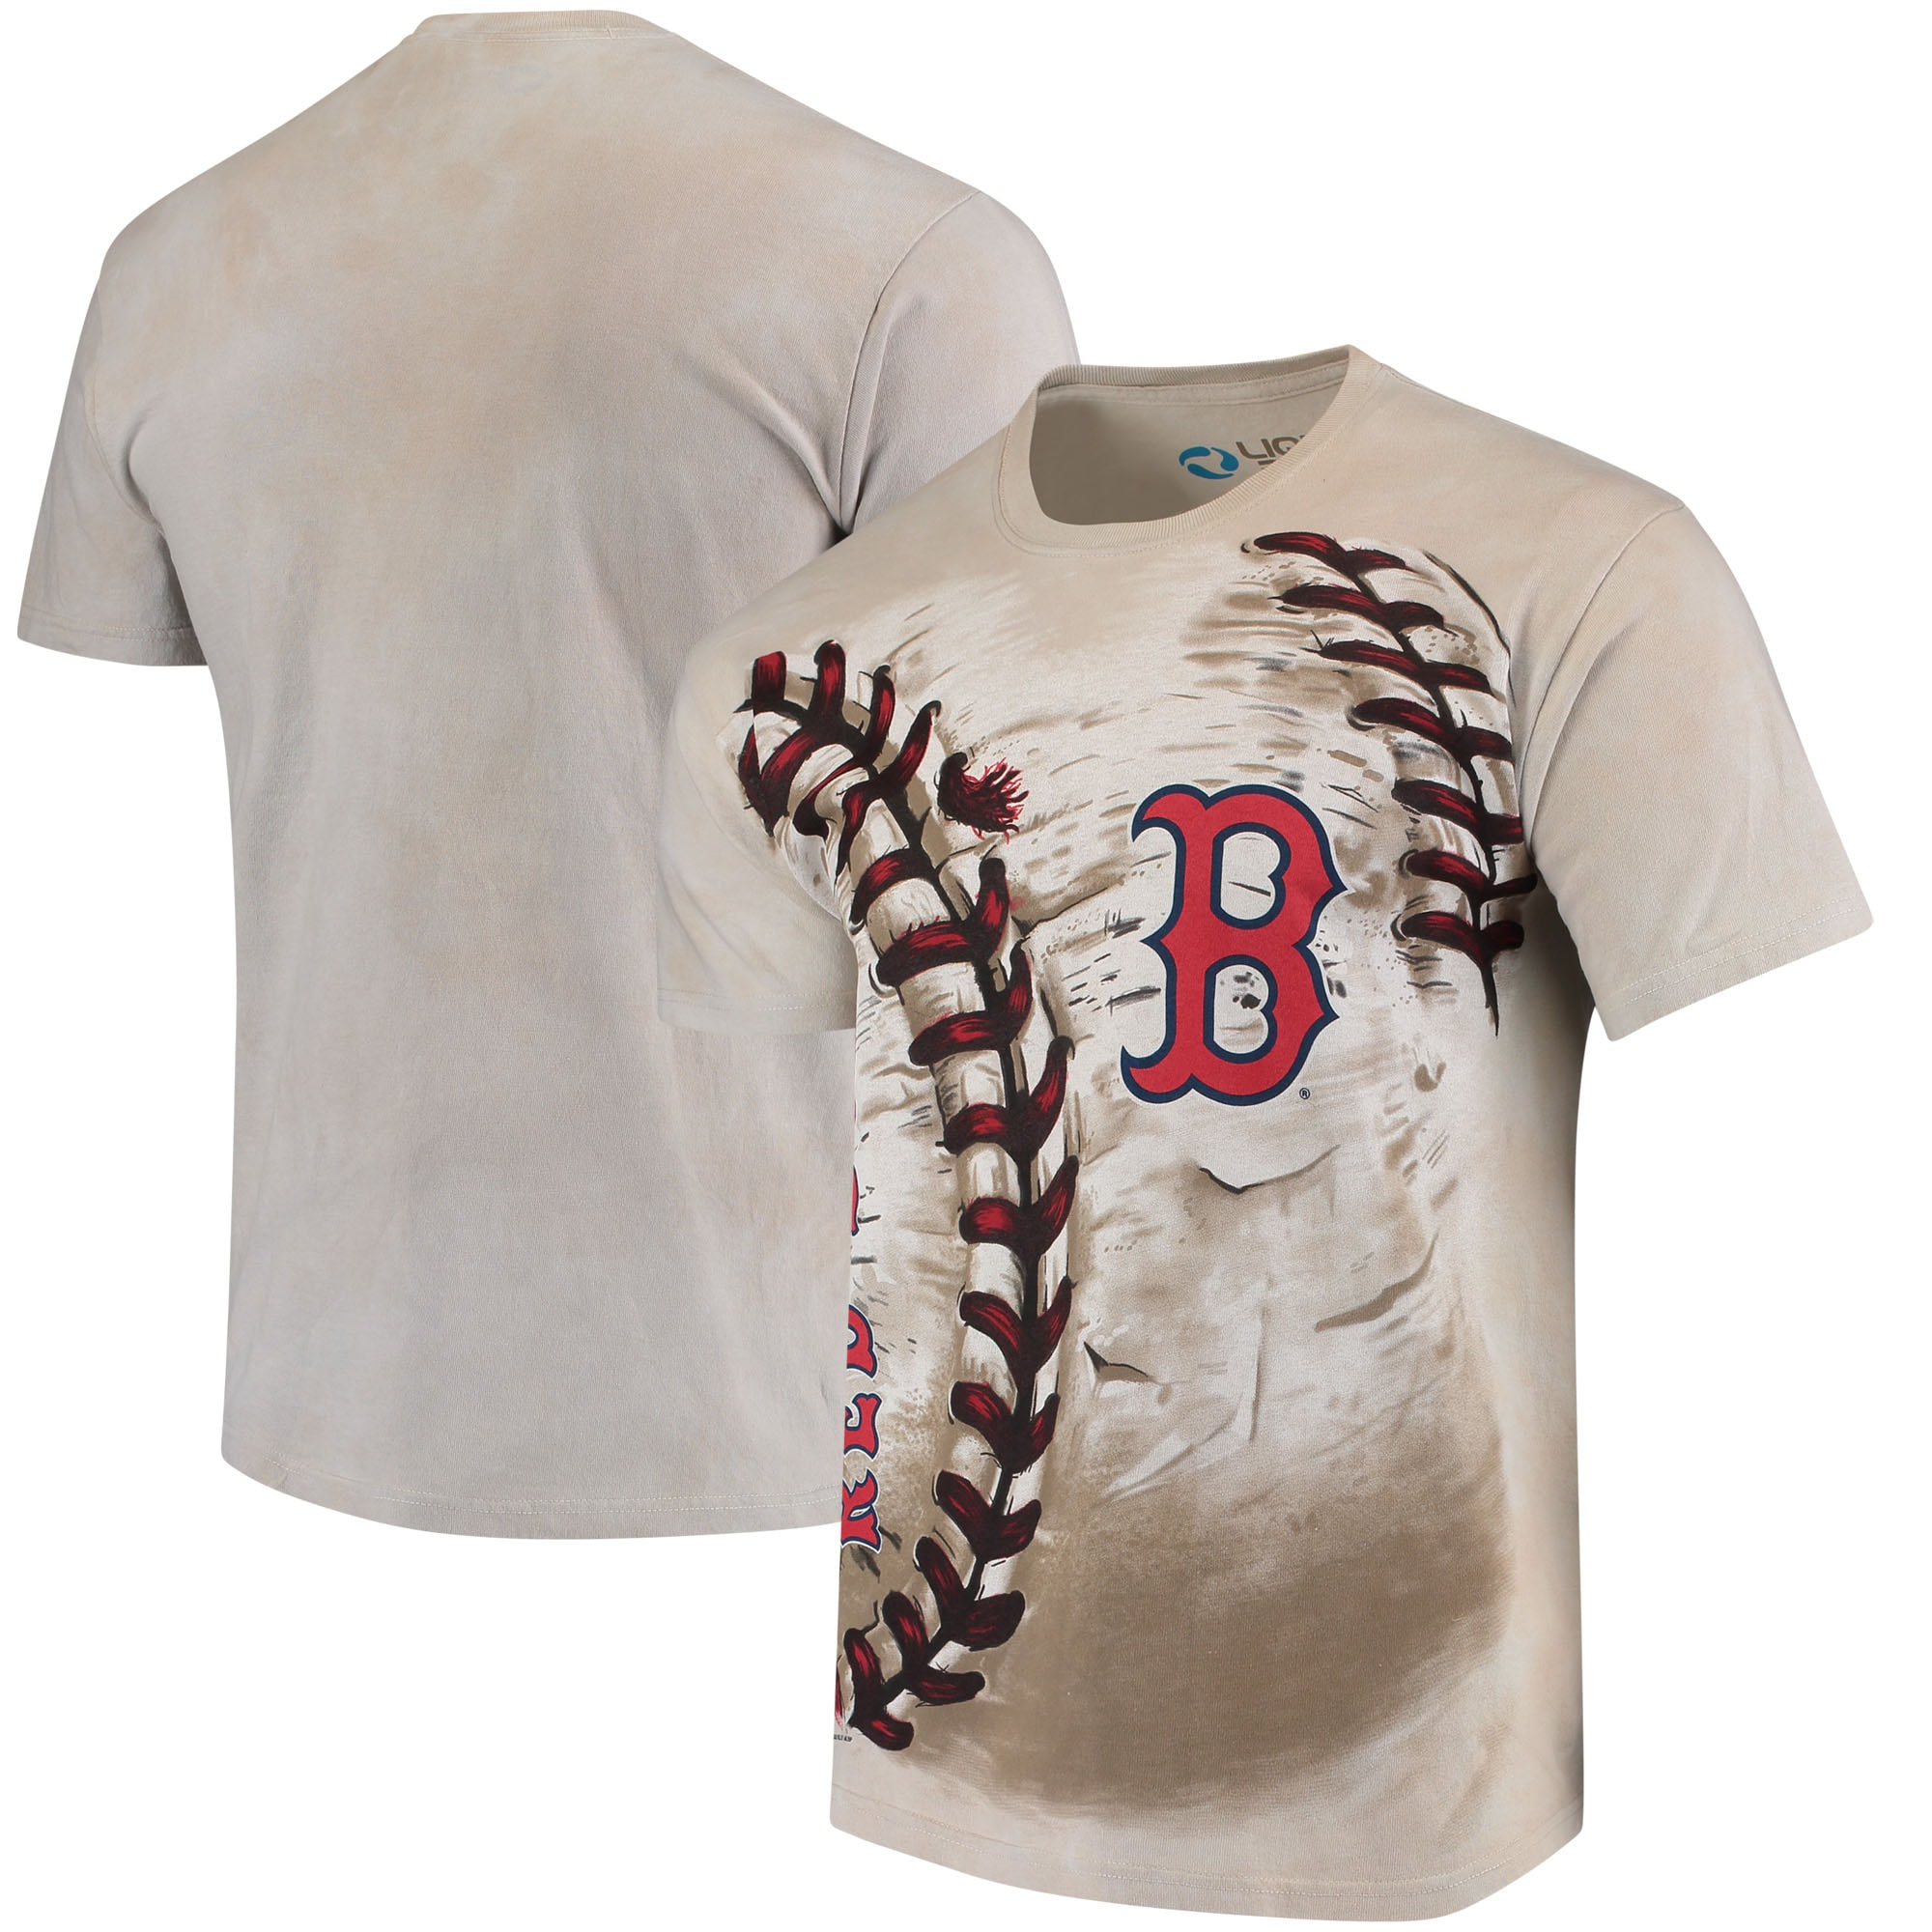 Boston Red Sox Hardball Tie-Dye T-Shirt - Cream